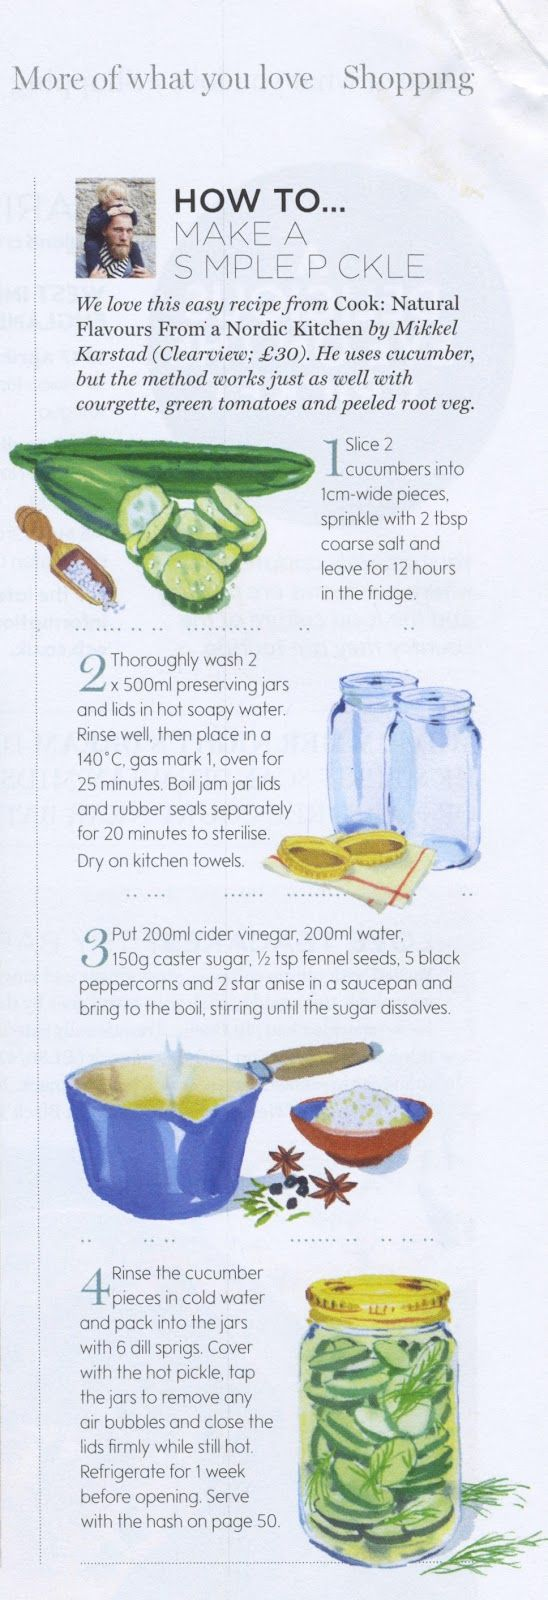 MARY WOODIN ILLUSTRATION: SIMPLE PICKLES